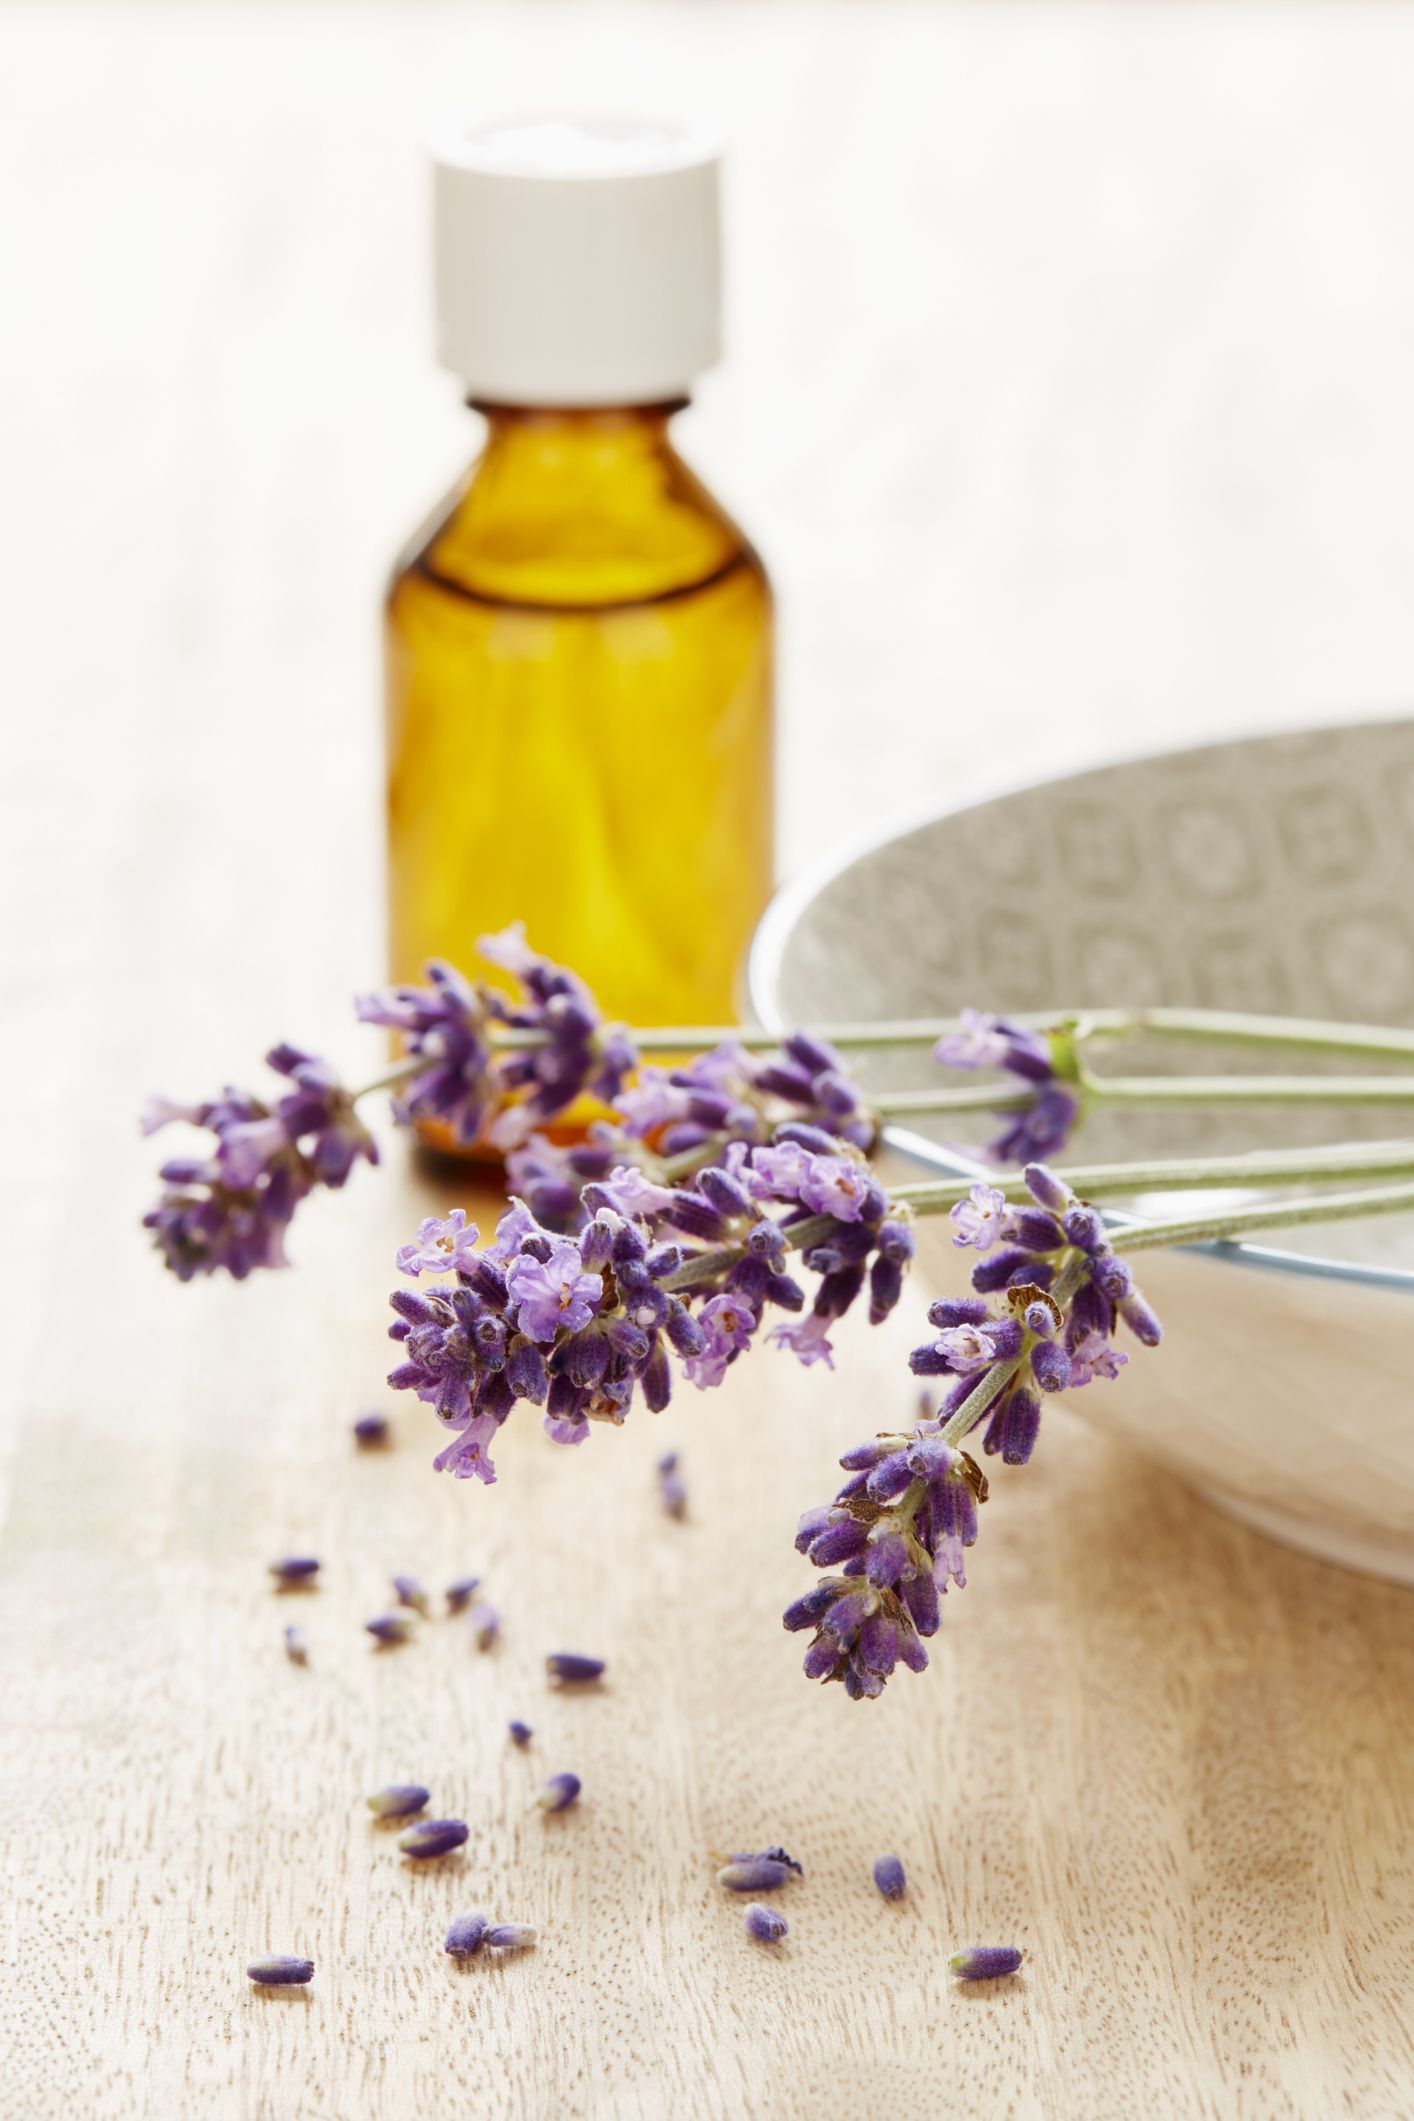 6 essential oils to promote mental wellbeing